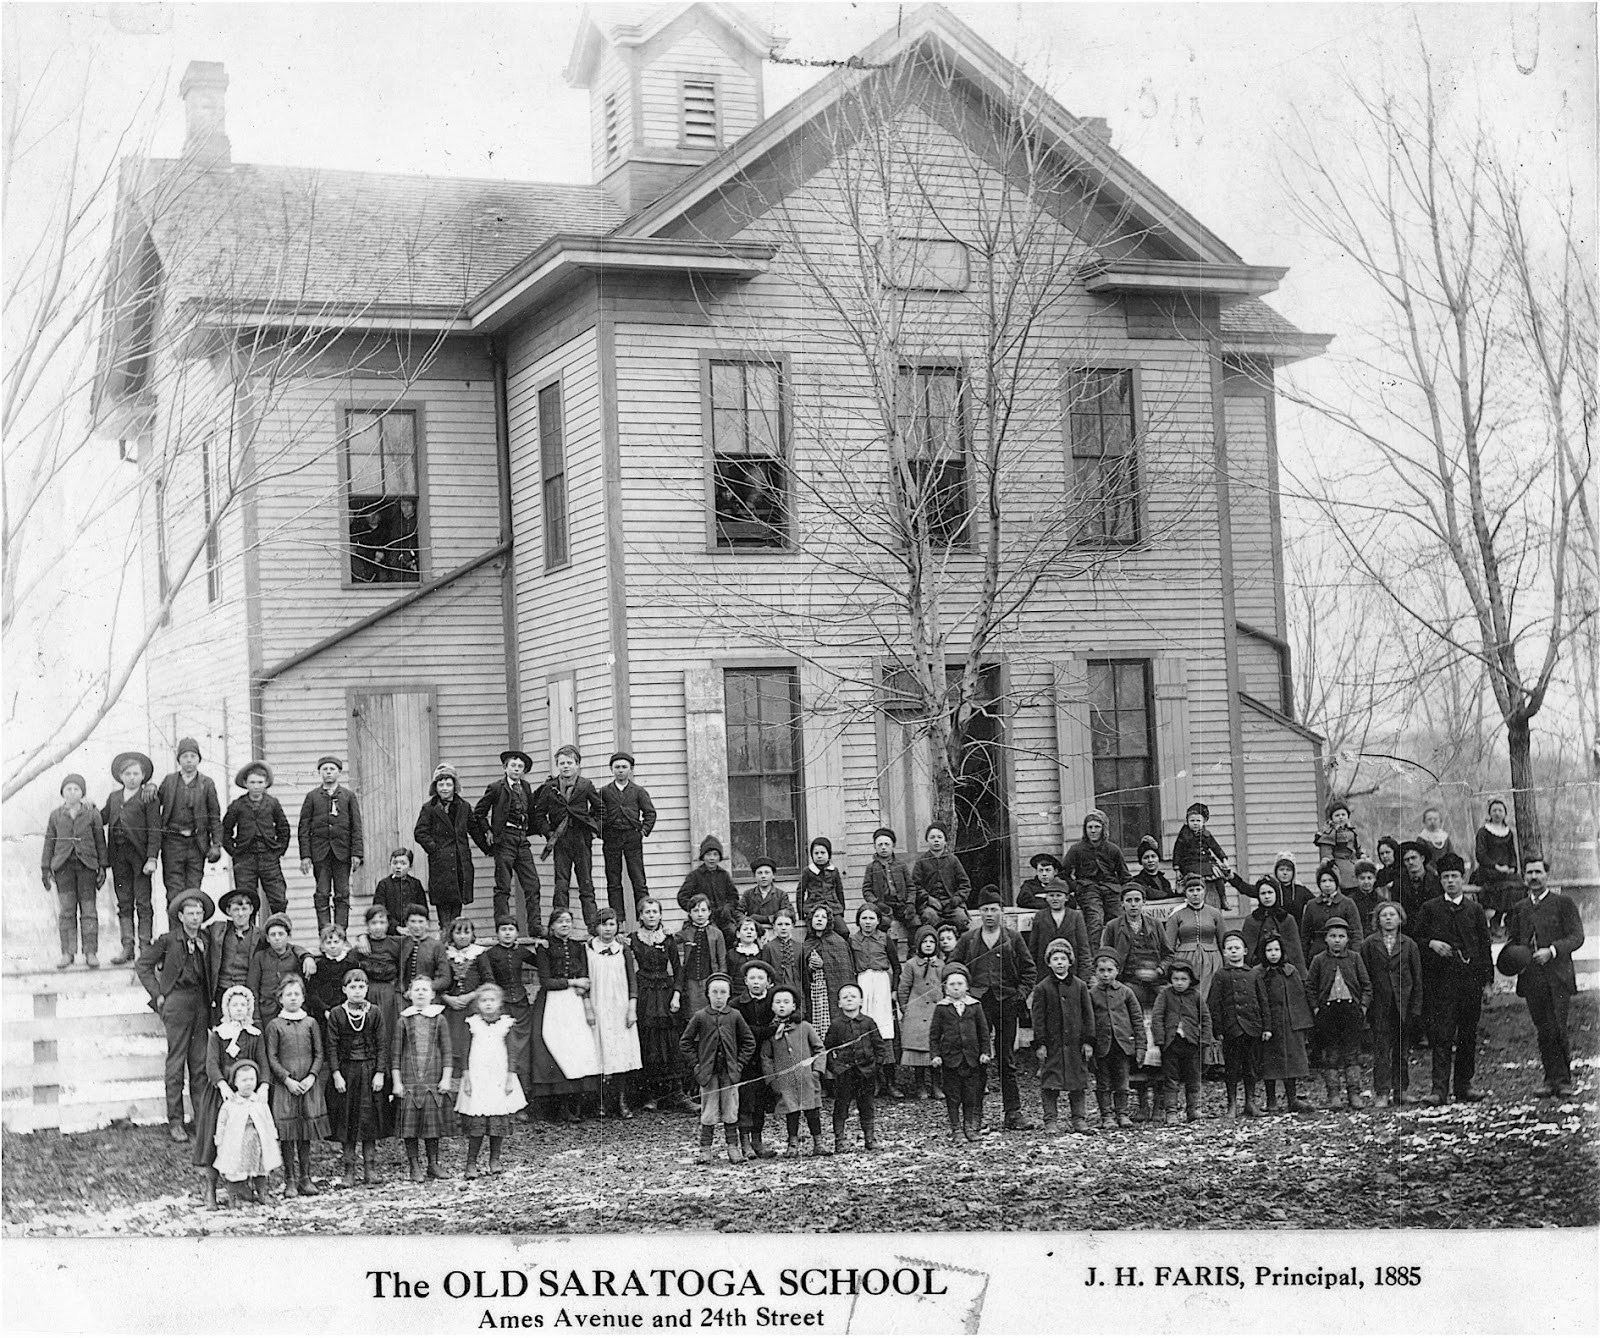 Saratoga School, N. 24th and Ames Avenue, North Omaha, Nebraska